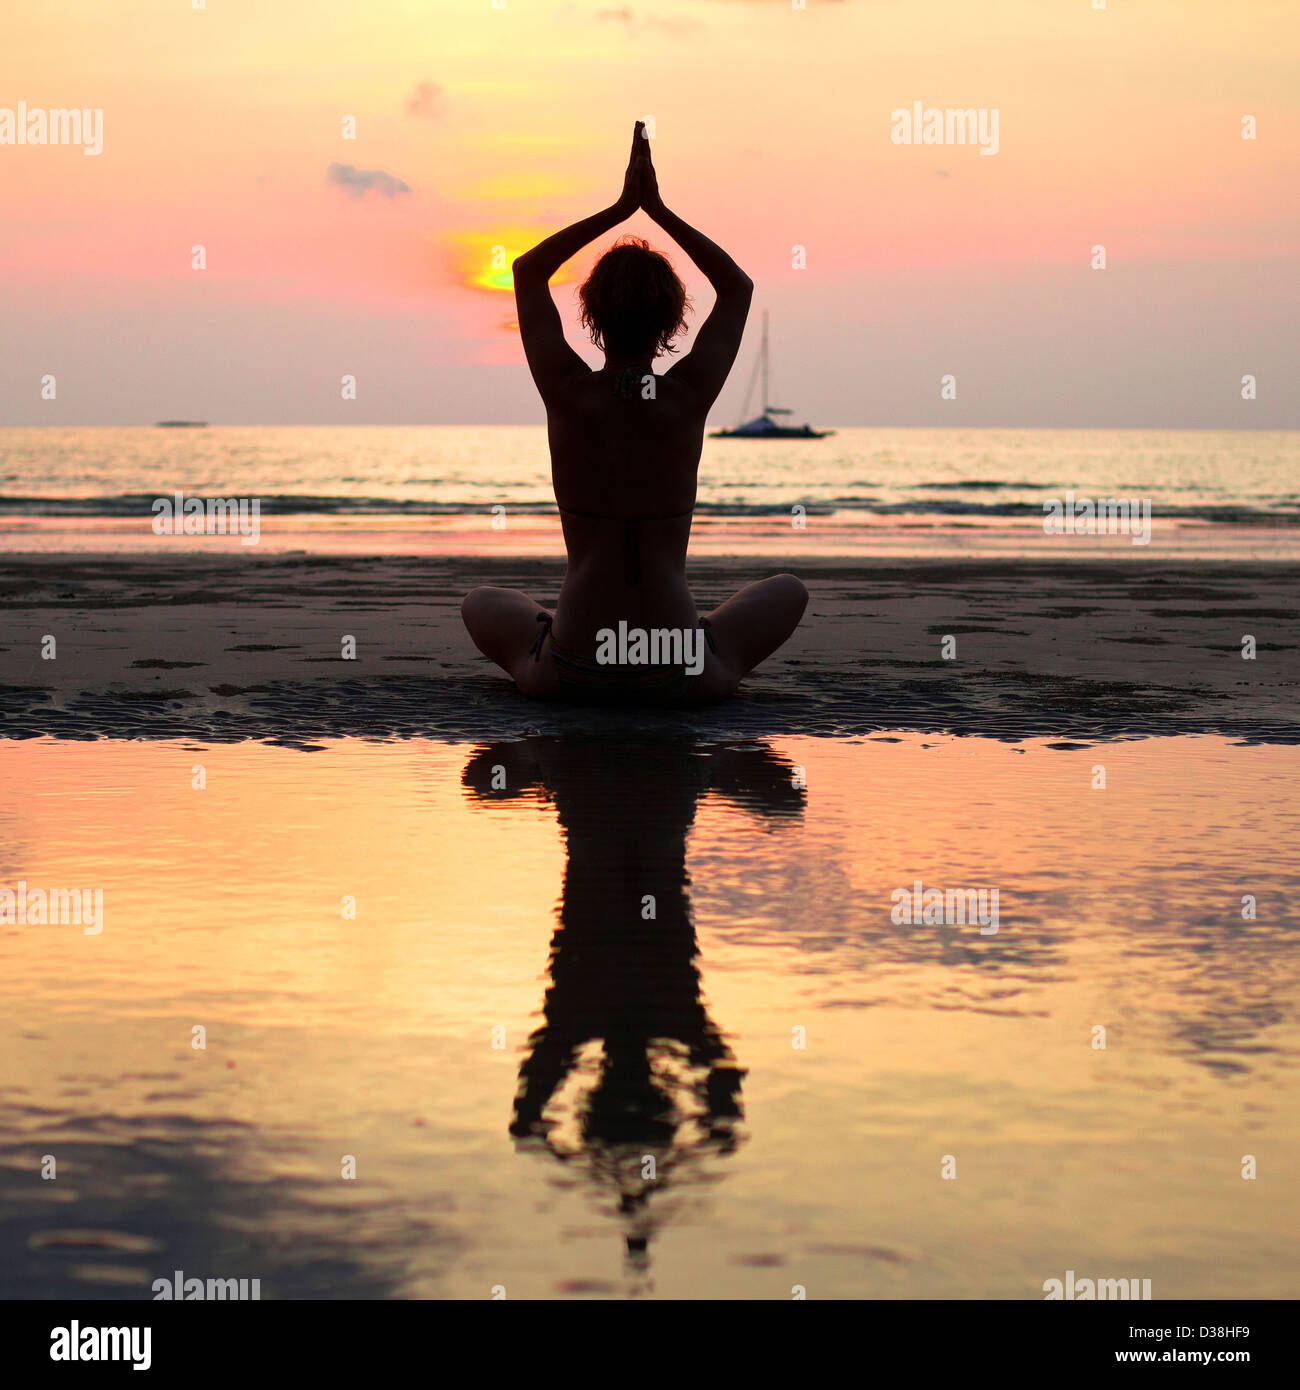 Yoga woman sitting in lotus pose on the beach during sunset, with reflection in water - Stock Image